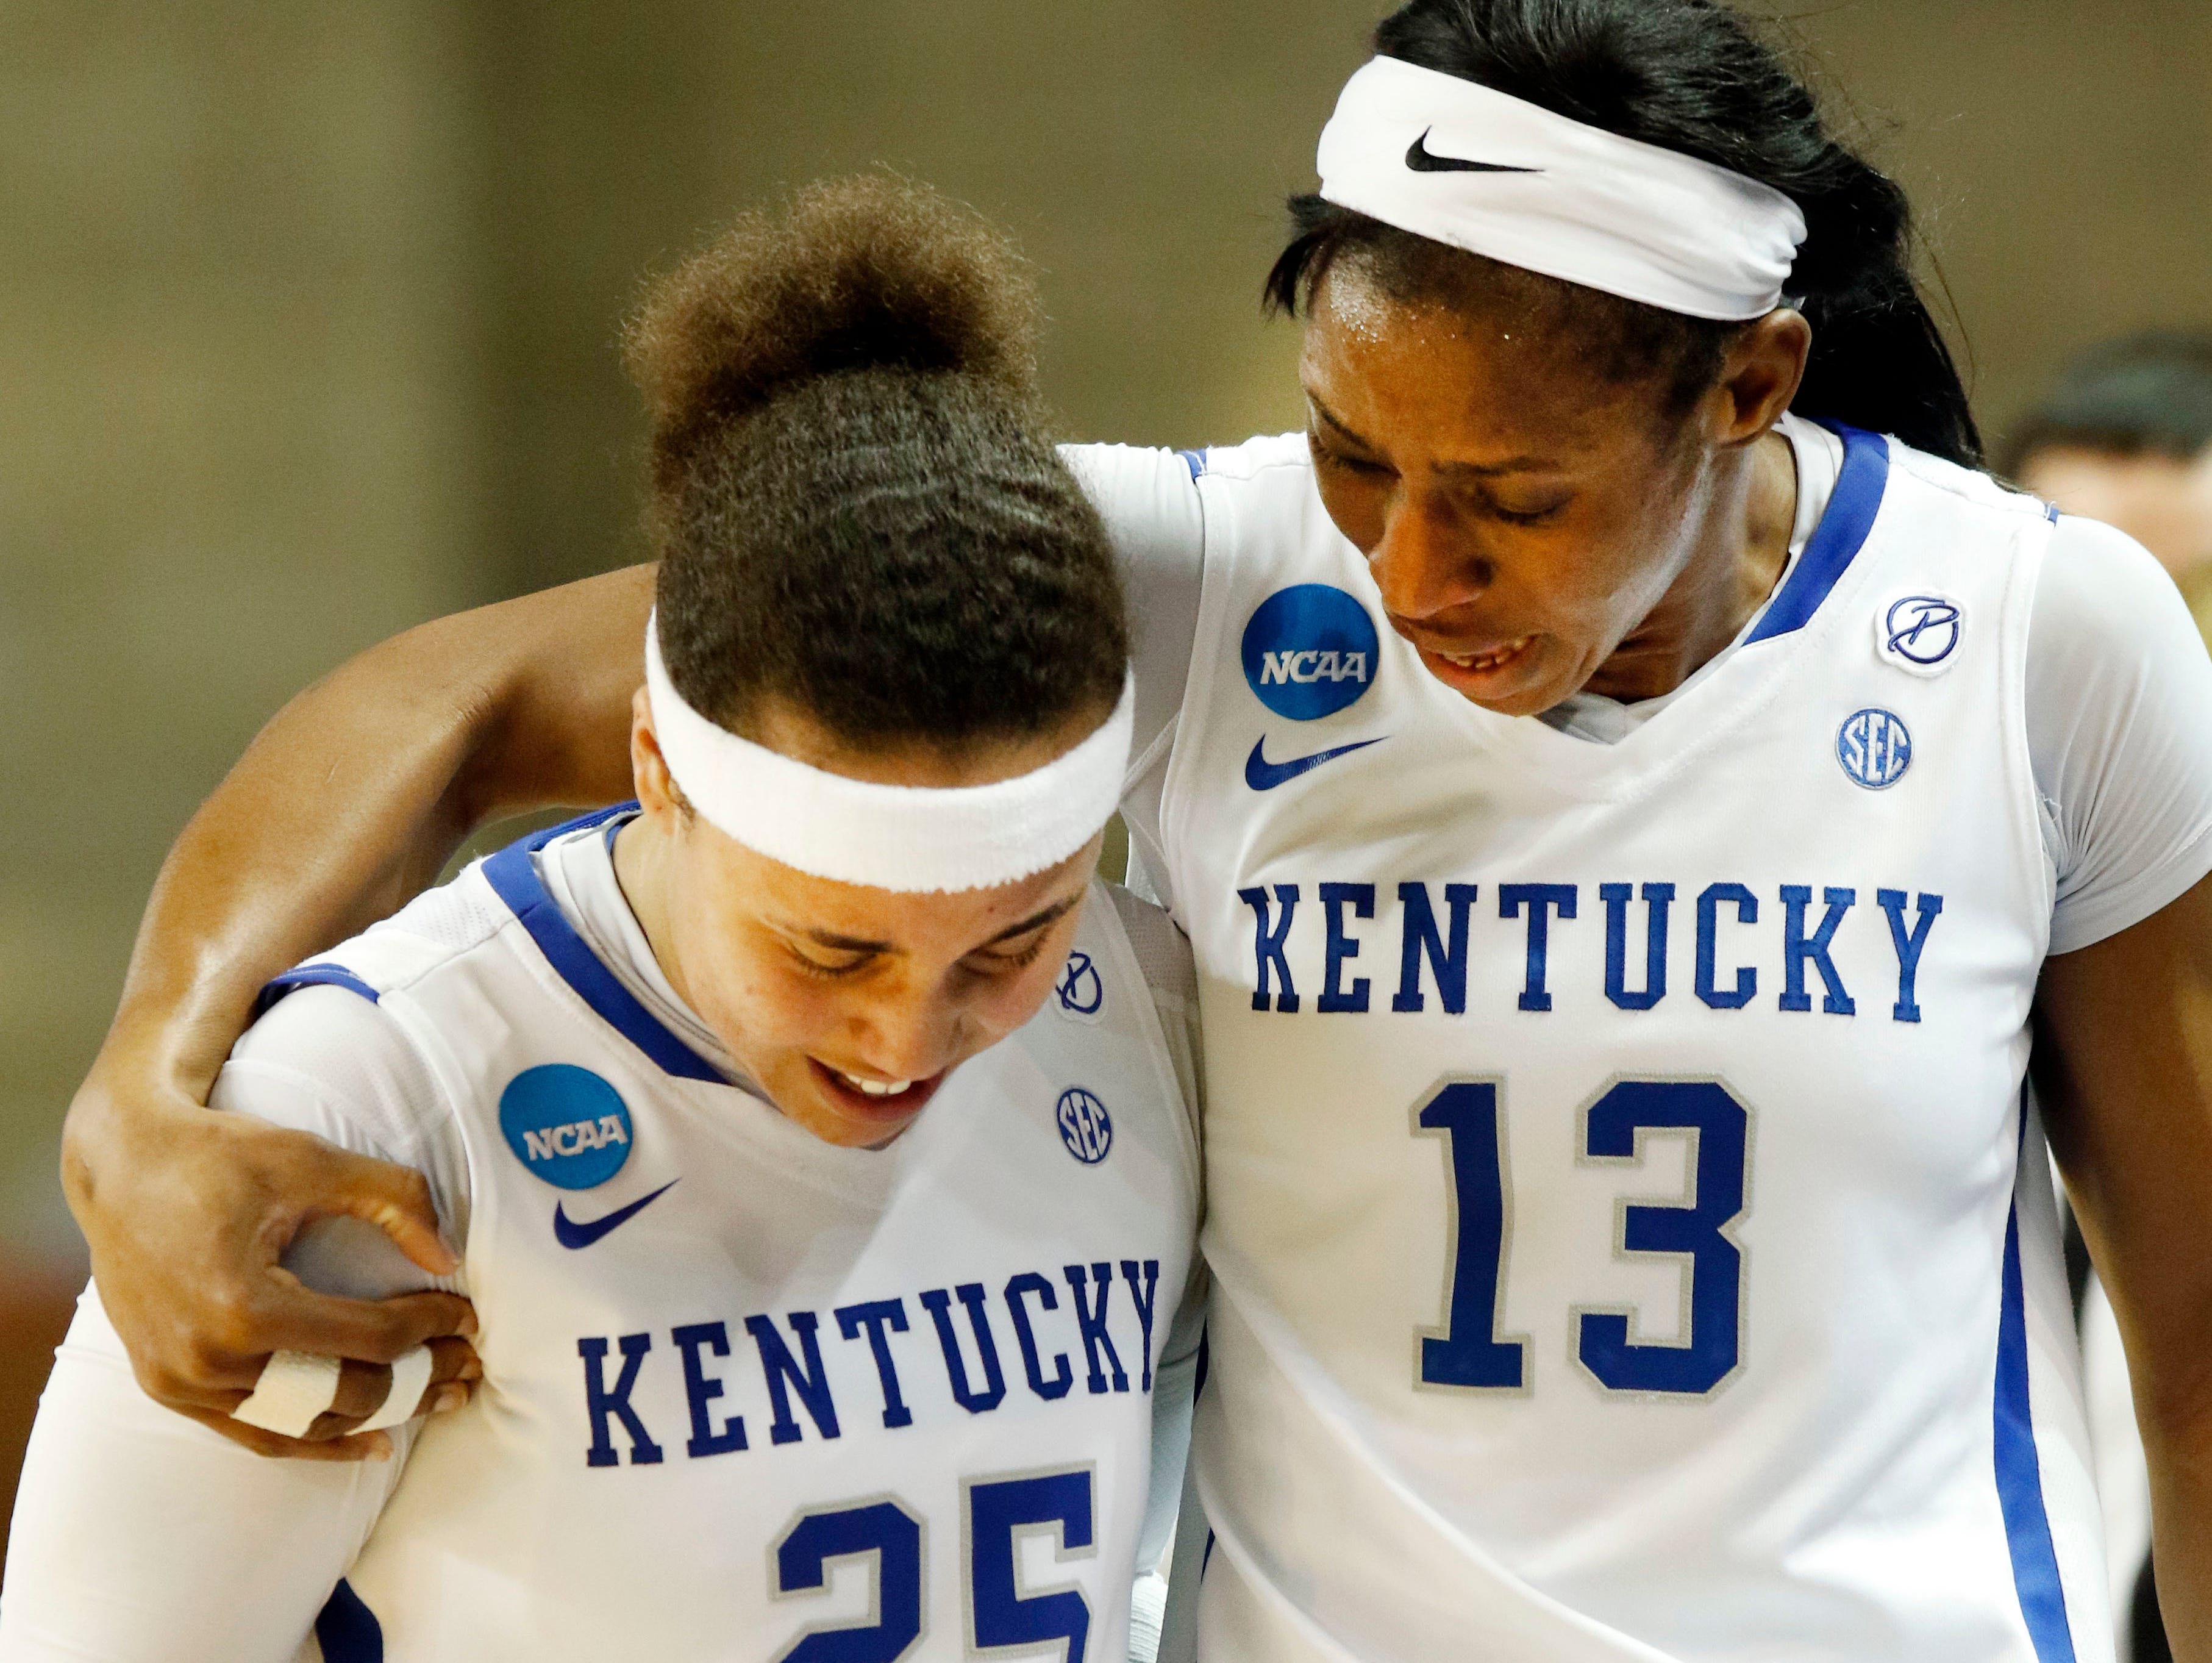 Kentucky's Makayla Epps (25) is consoled by teammate Evelyn Akhator (13) in the closing seconds of a second-round game in the women's NCAA college basketball tournament against Ohio State in Lexington, Ky., Sunday, March 19, 2017. (AP Photo/James Crisp)